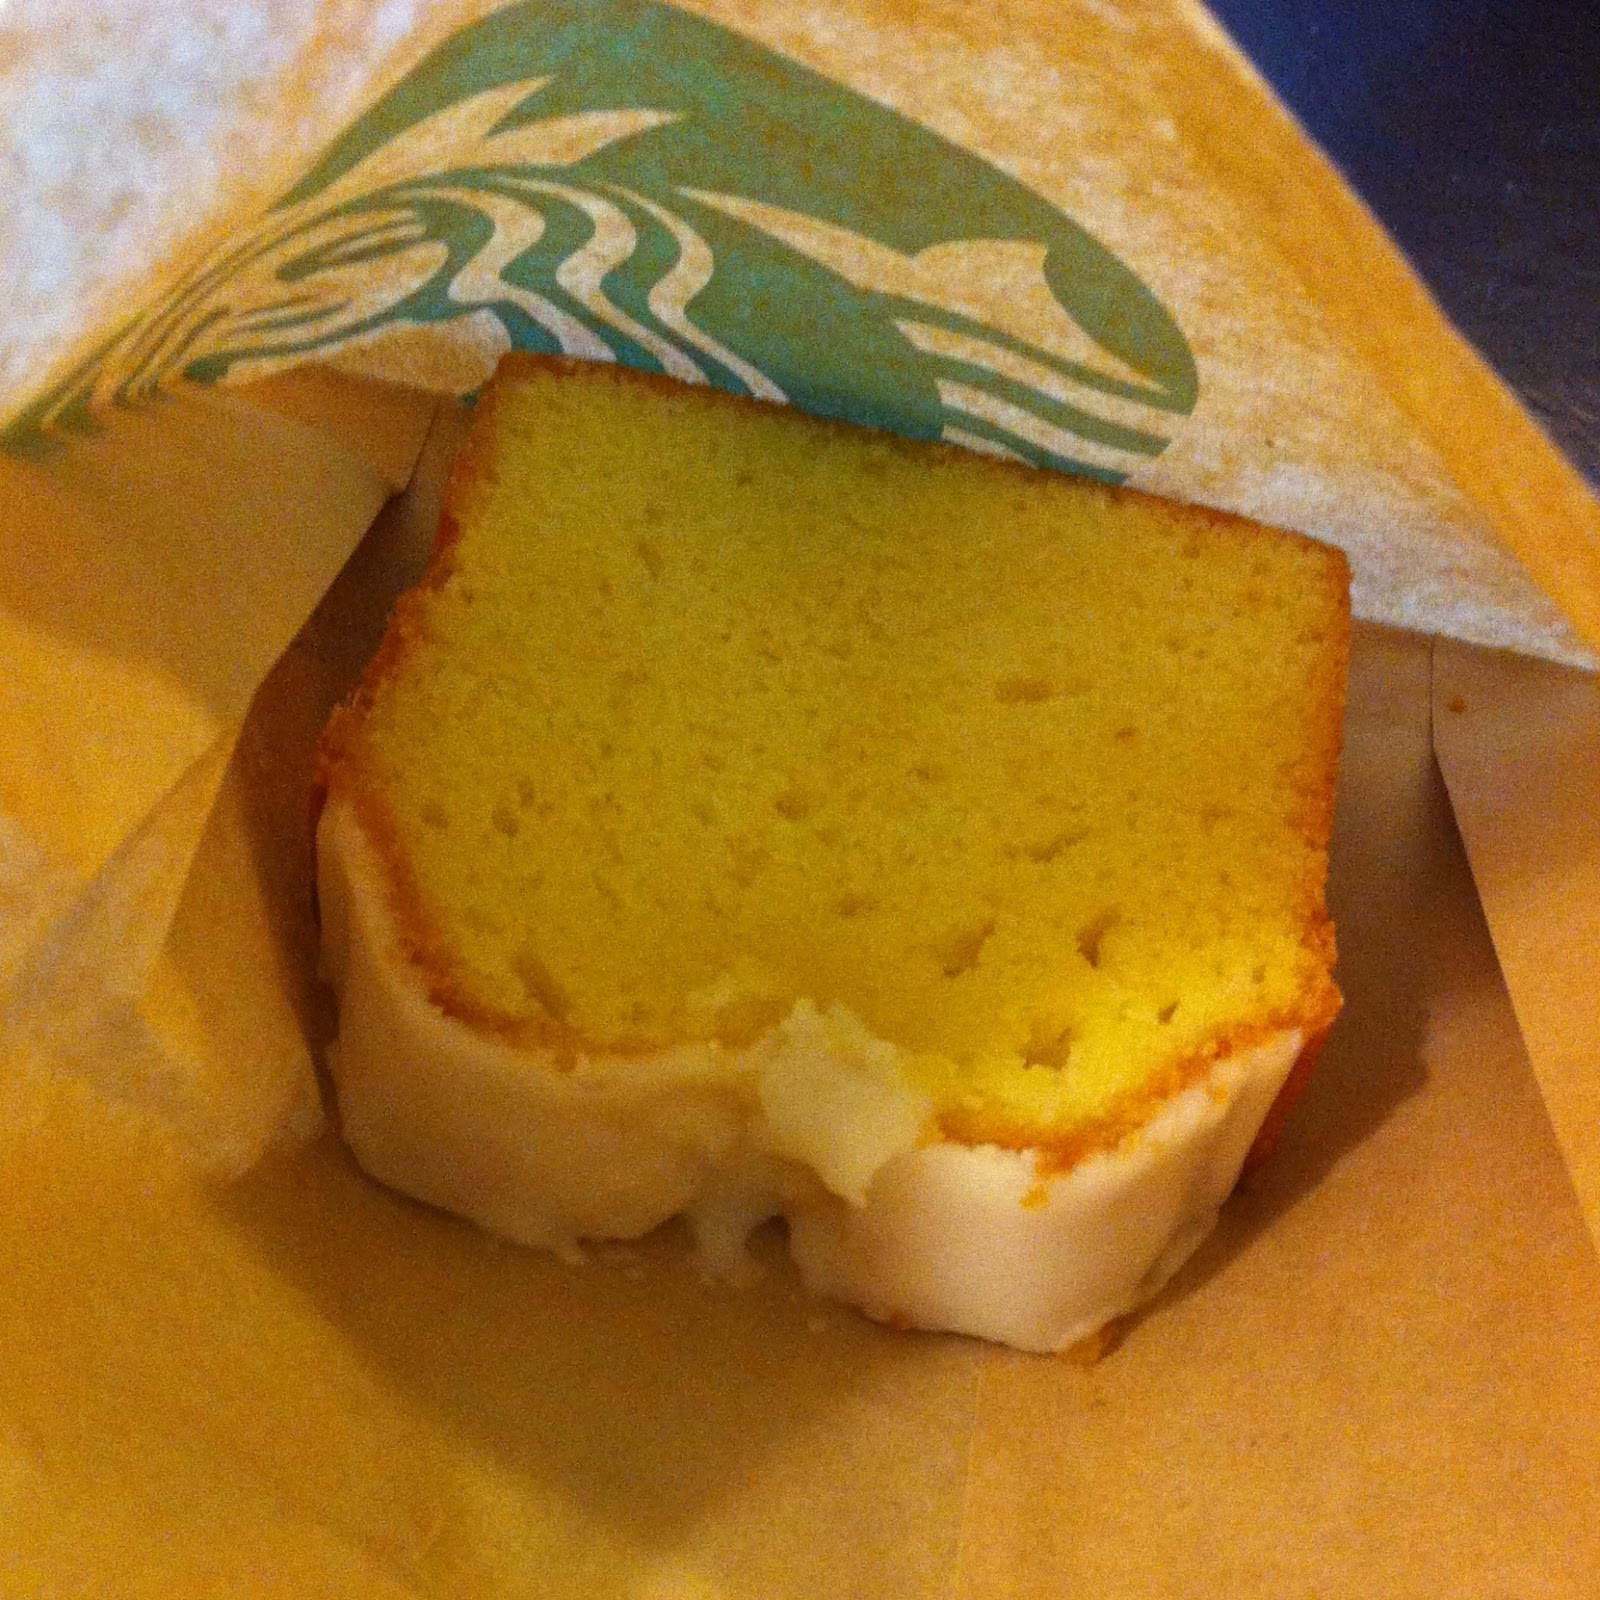 Starbucks Lemon Cake Calories